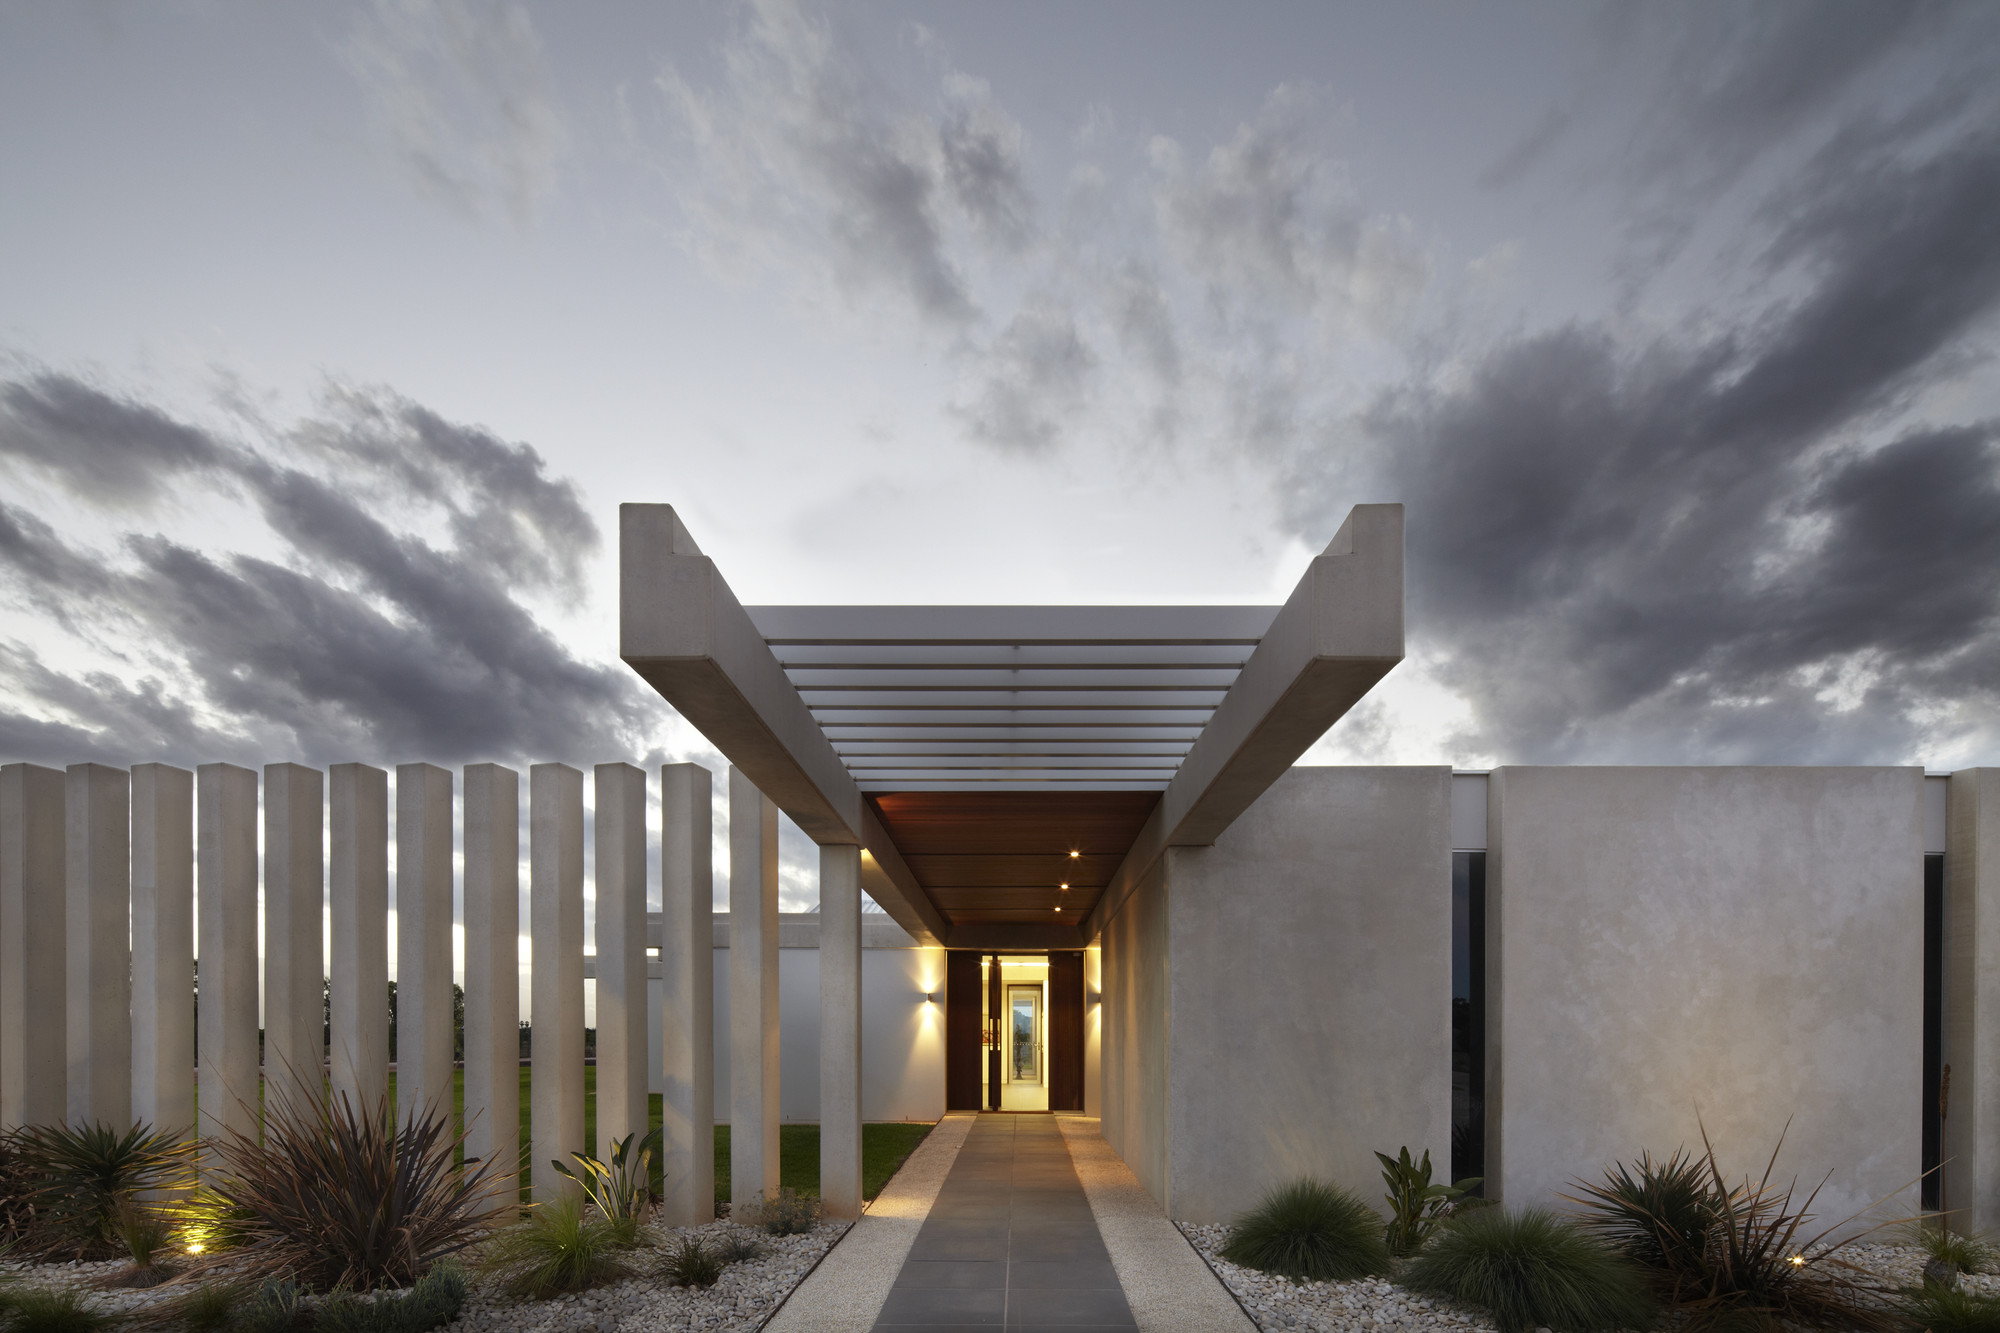 Old And New Architecture Design Relationship australian institute of architects announces 2014 national awards